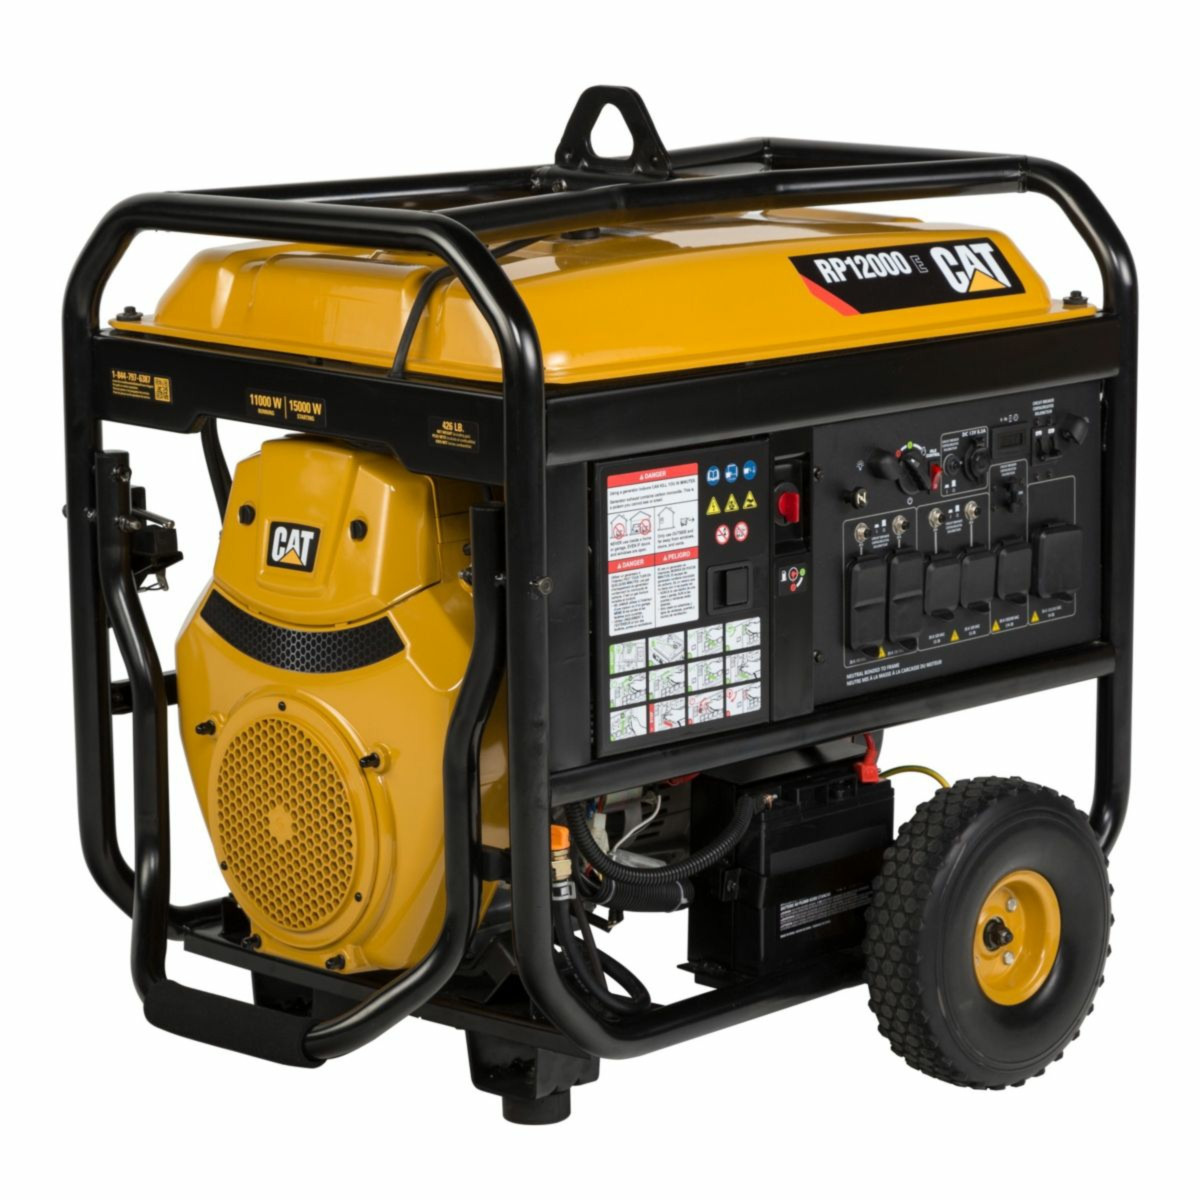 hight resolution of caterpillar rp12000e 12000w electric start portable generator free shipping